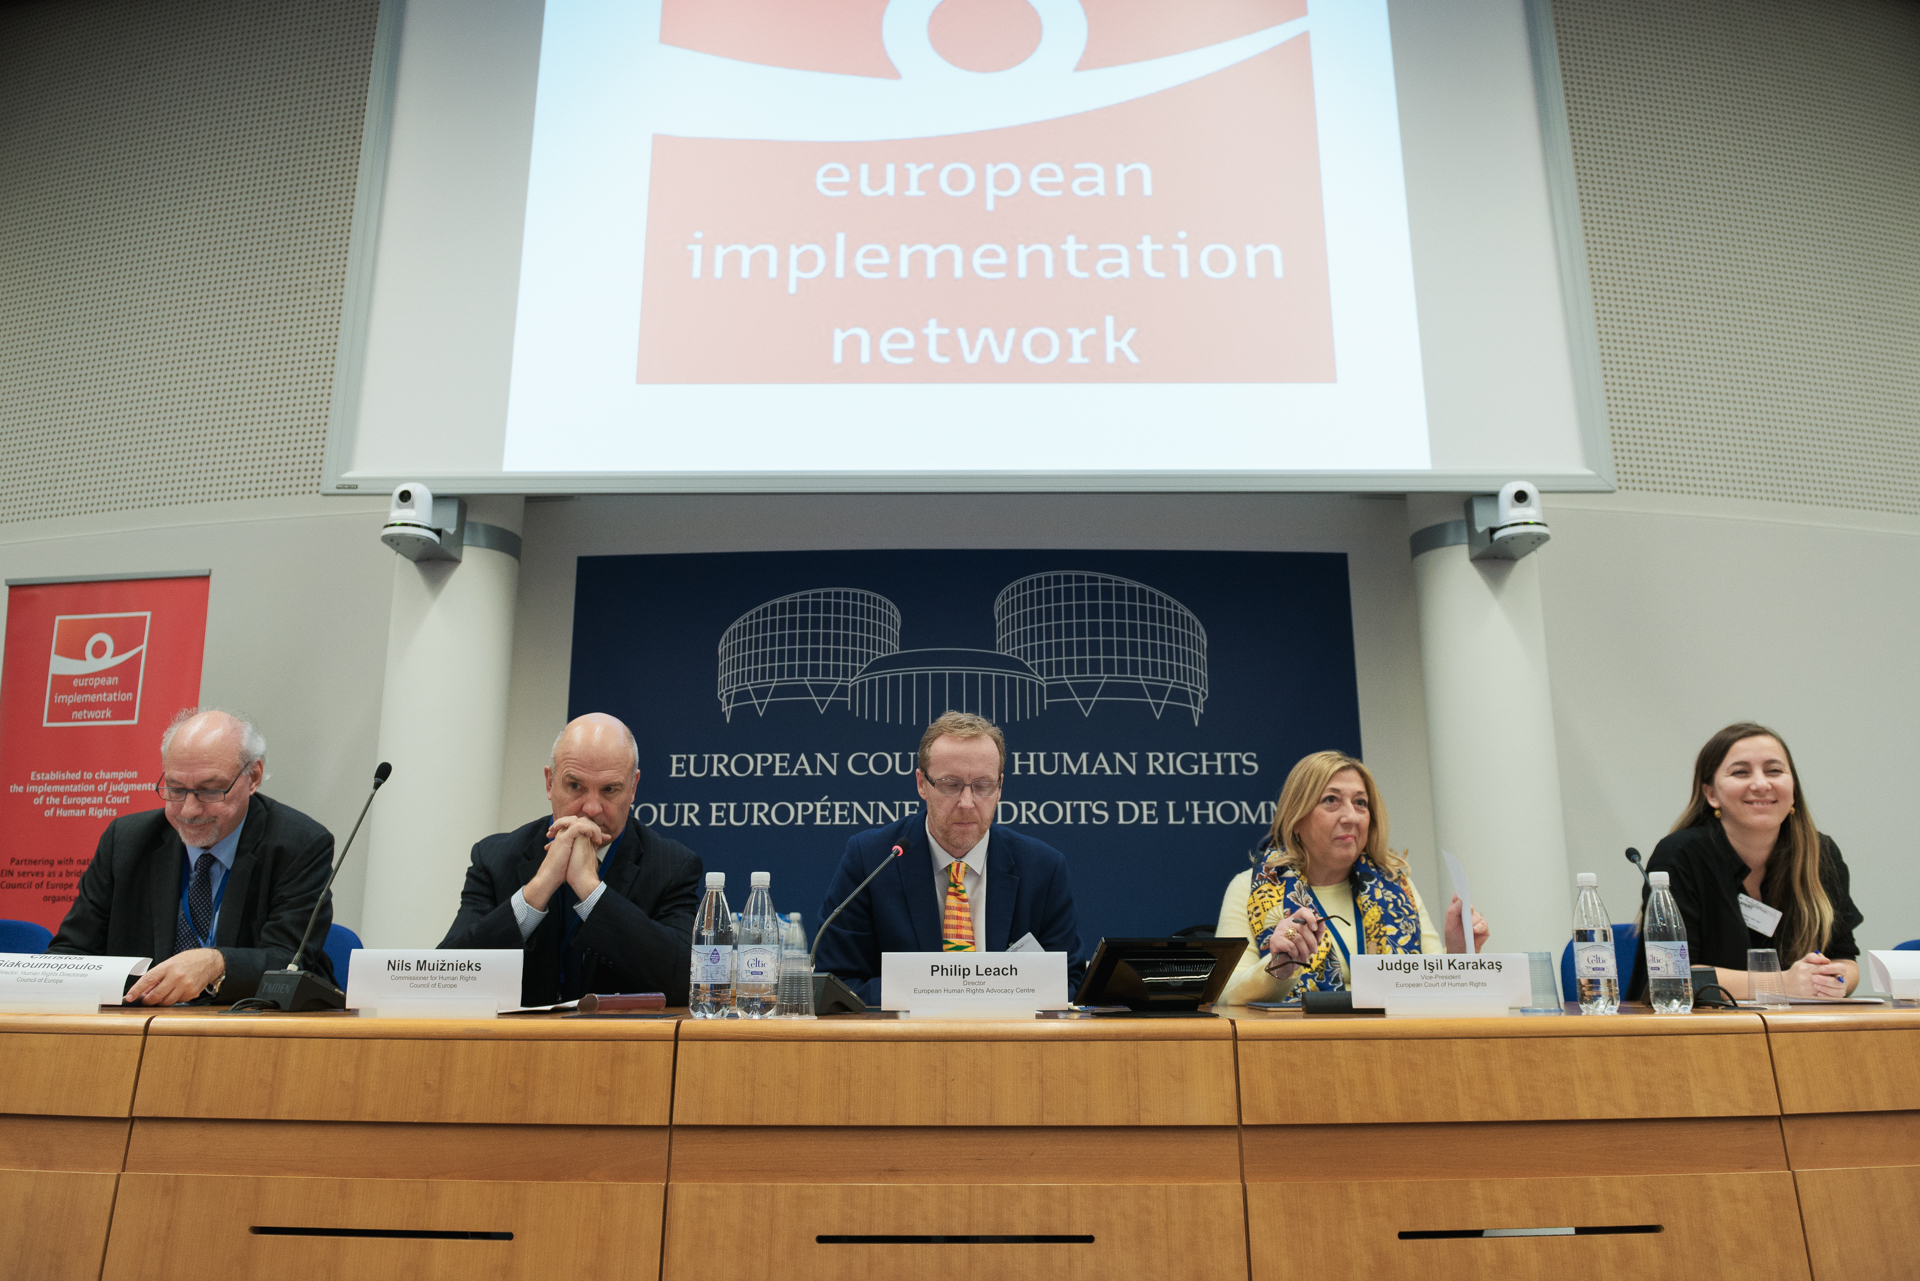 From left:Christos Giakoumopoulos, Director of the Human Rights Directorate of the Council of Europe, Nils Muižnieks, Commissioner for Human Rights of the Council of Europe, Professor Philip Leach, Vice-Chair of the EIN, Judge Işil Karakaş, Vice-President of the European Court of Human Rights, and Professor Başak Çal ı , Chair of the EIN  © Arnaud Fonquerne